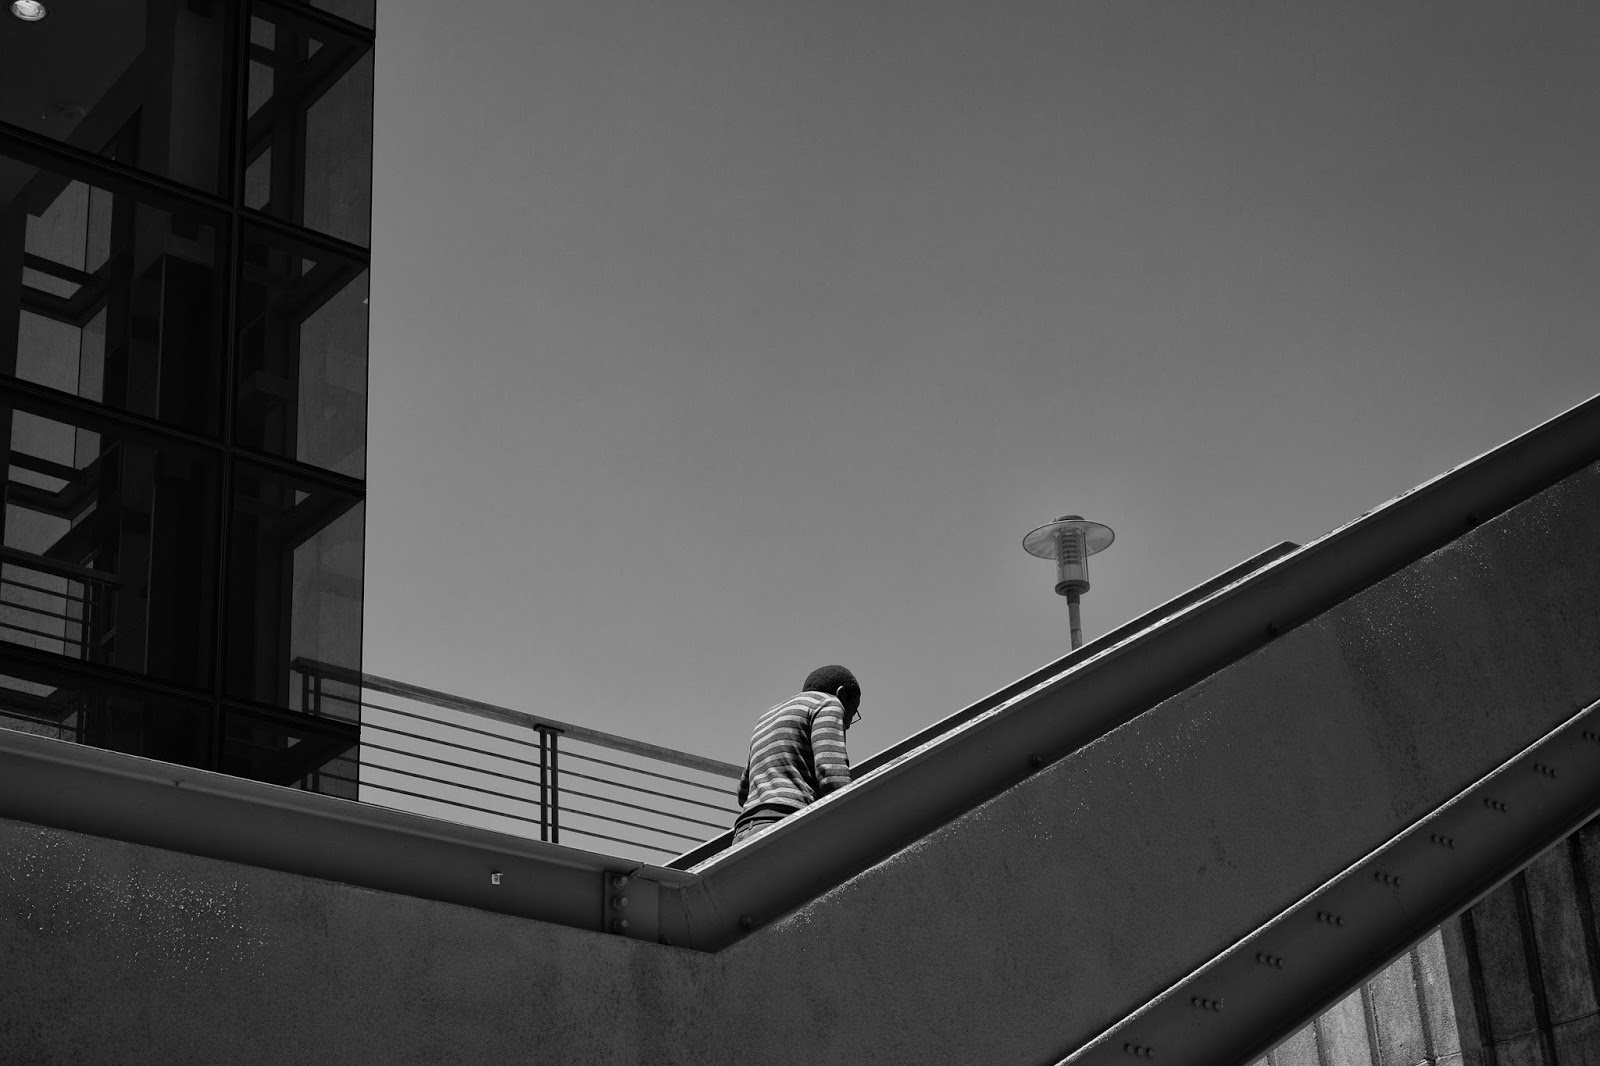 A man climbs the steps outside the Cape Town train station